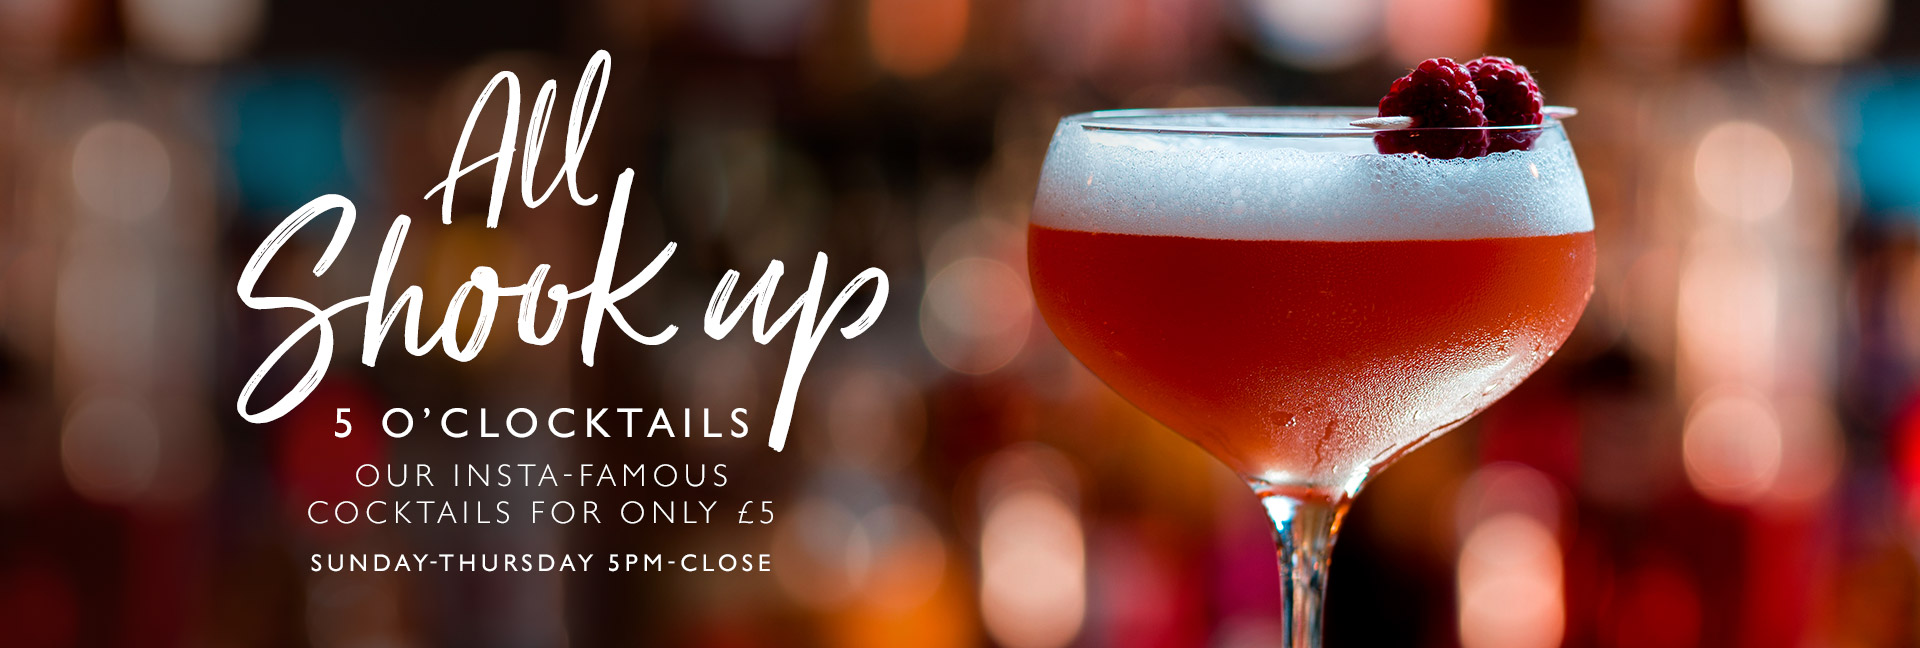 5 O'clocktails at All Bar One Trafford Centre - Book now